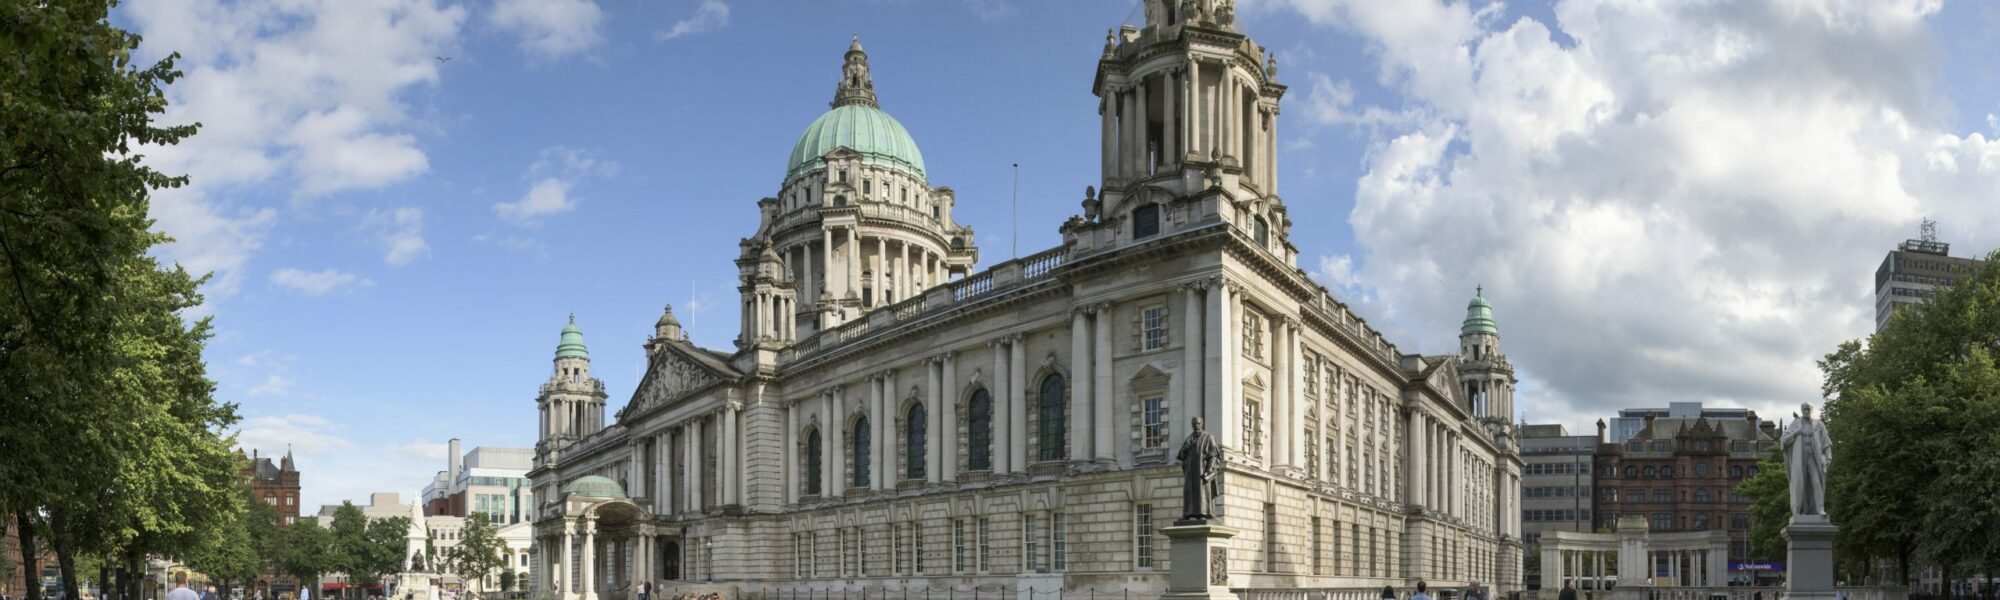 Belfast City Hall - John Miskelly Photography - cc